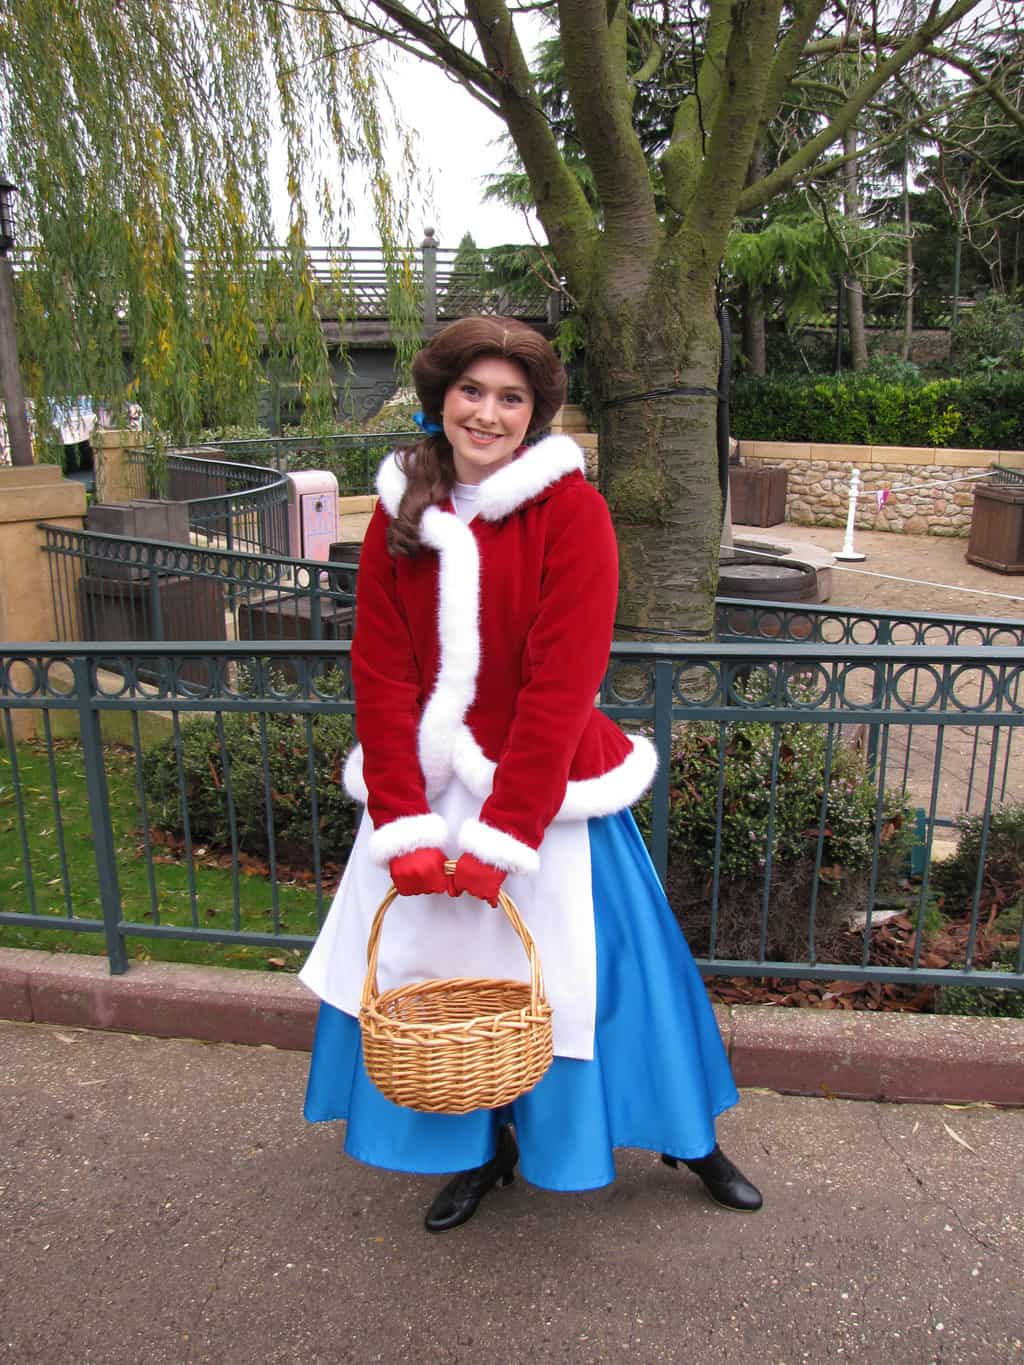 Belle wearing her Christmas outfit. Belle used to do Meet'n'Greets at her Village during the Christmas Season in the Disneyland Park. Sadly the Village didn't return during Christmas Season 2012/2013 and Belle did almost all her Meet'n'Greets in her yellow ball dress.